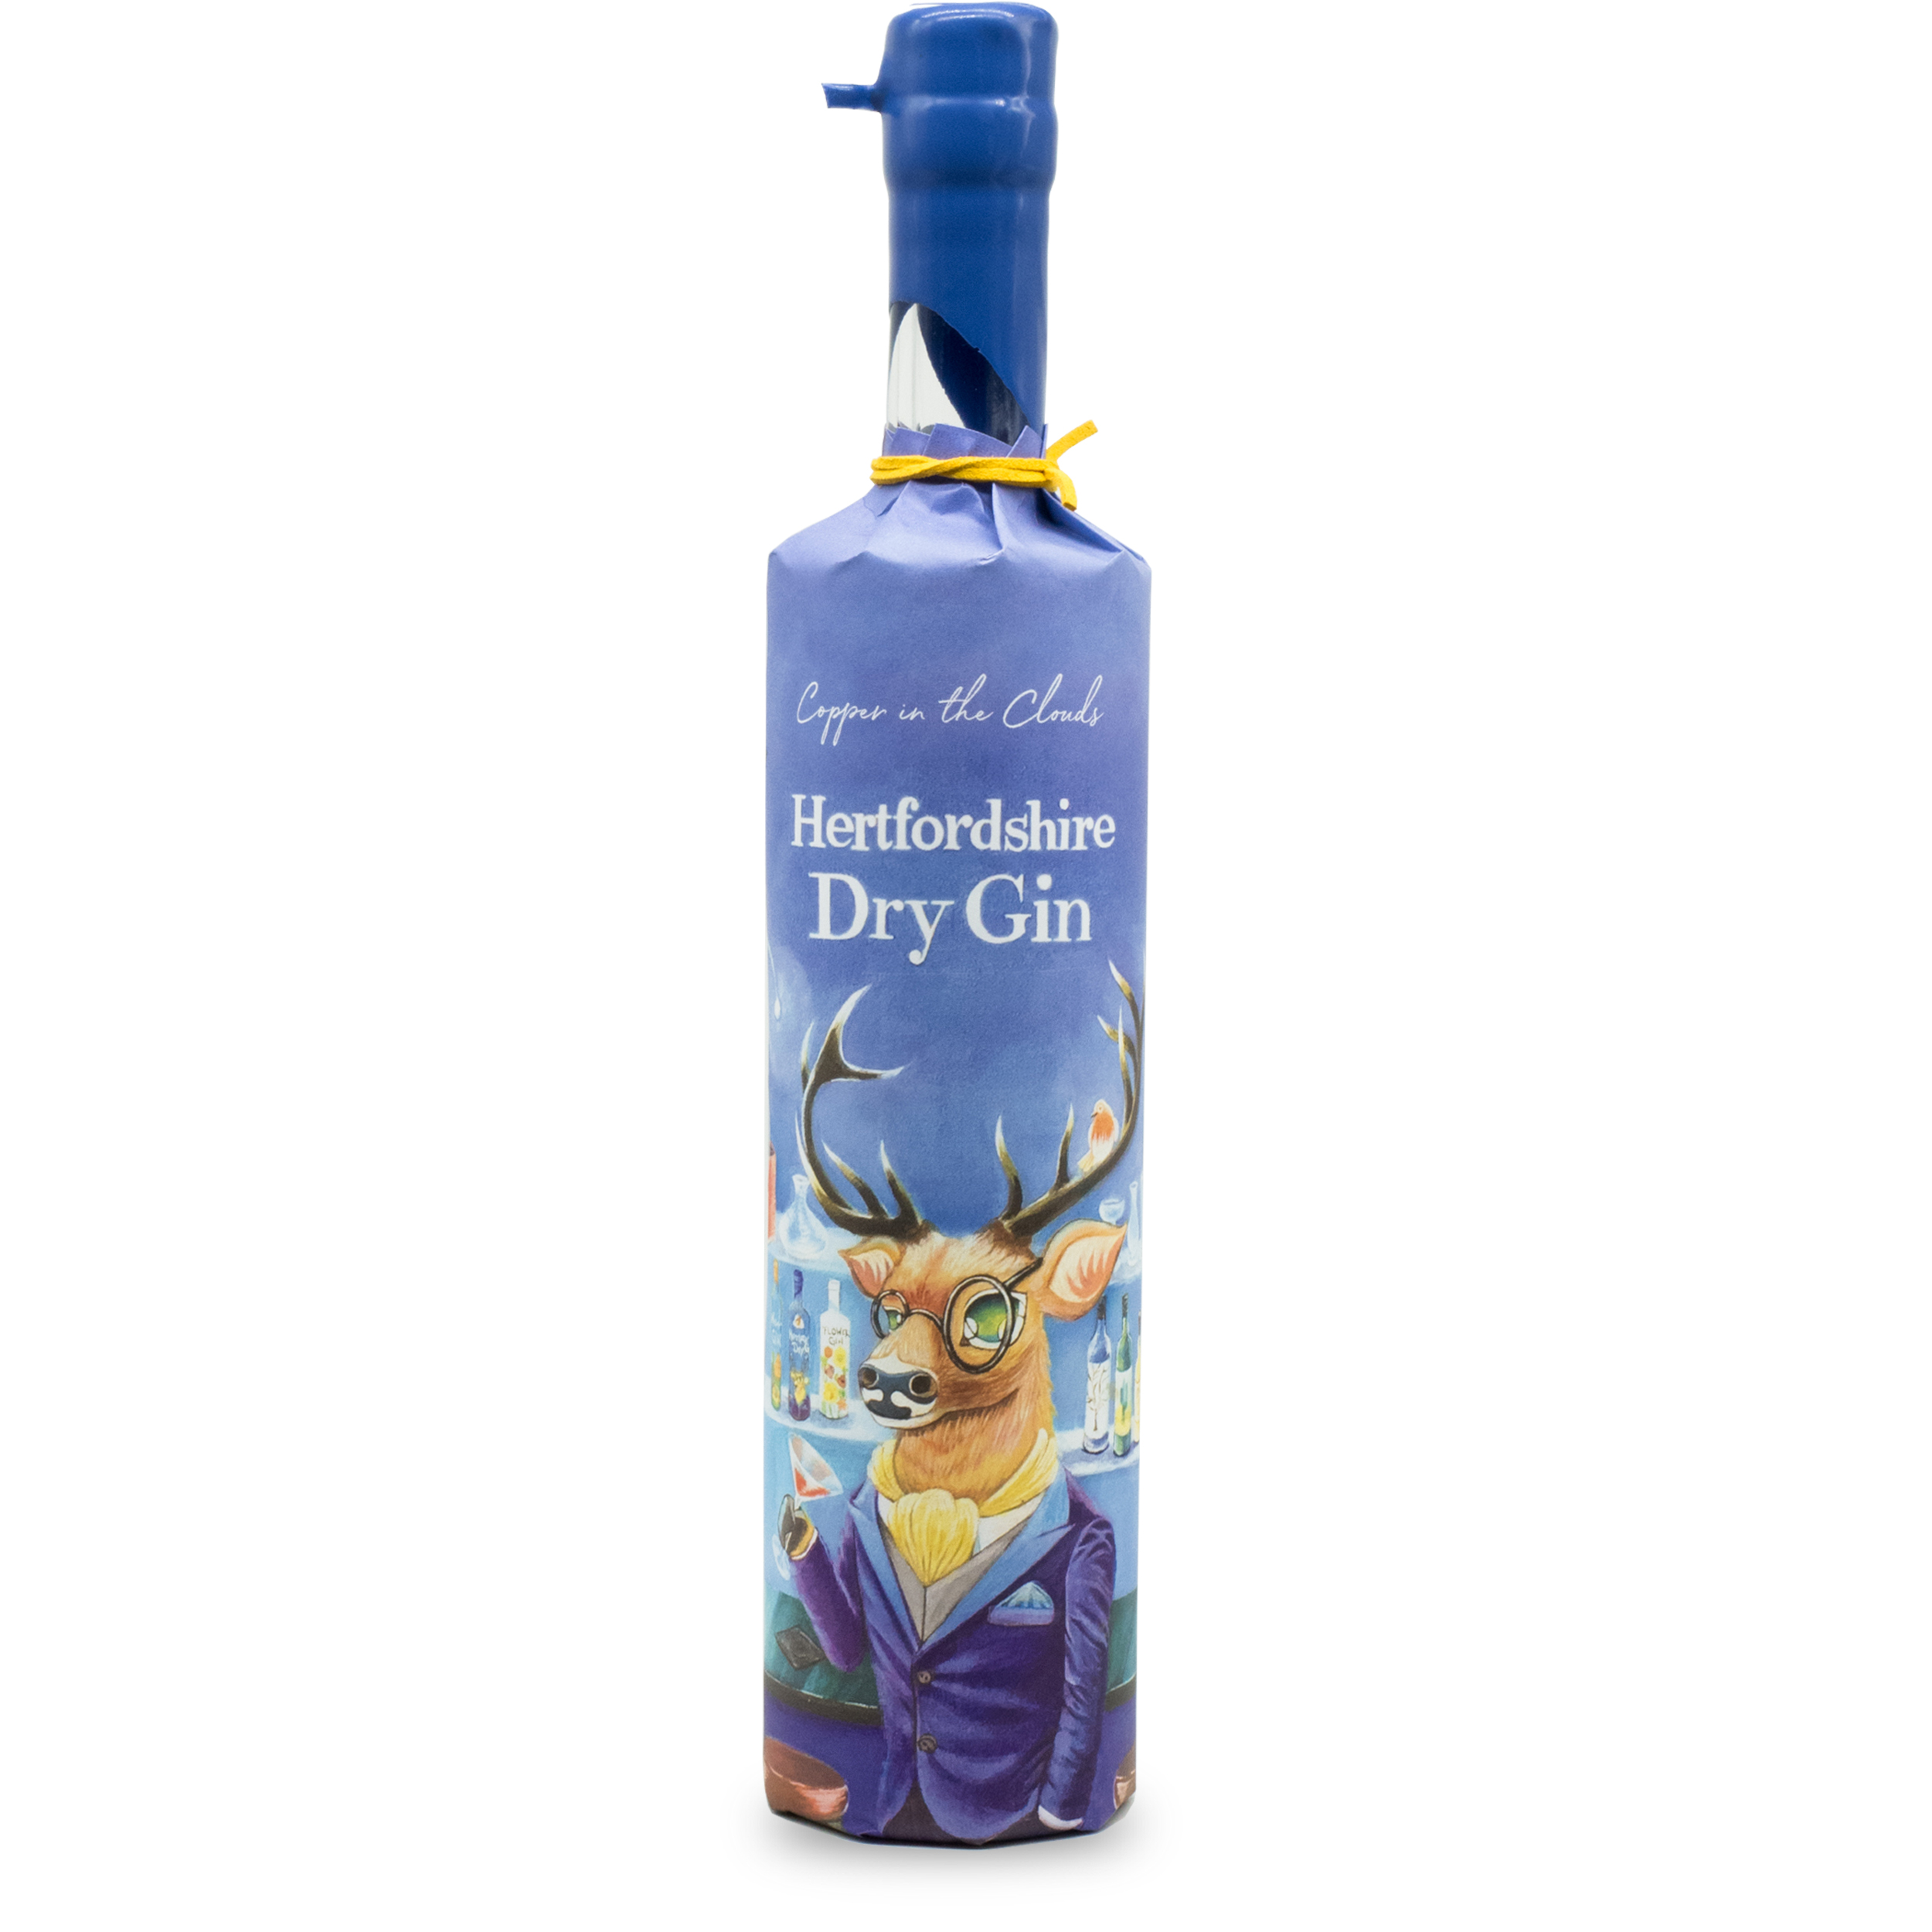 https://copperintheclouds.co.uk/wp-content/uploads/2020/07/Hertfordshire-Dry-Gin-70cl-Wrapped-Front.jpg